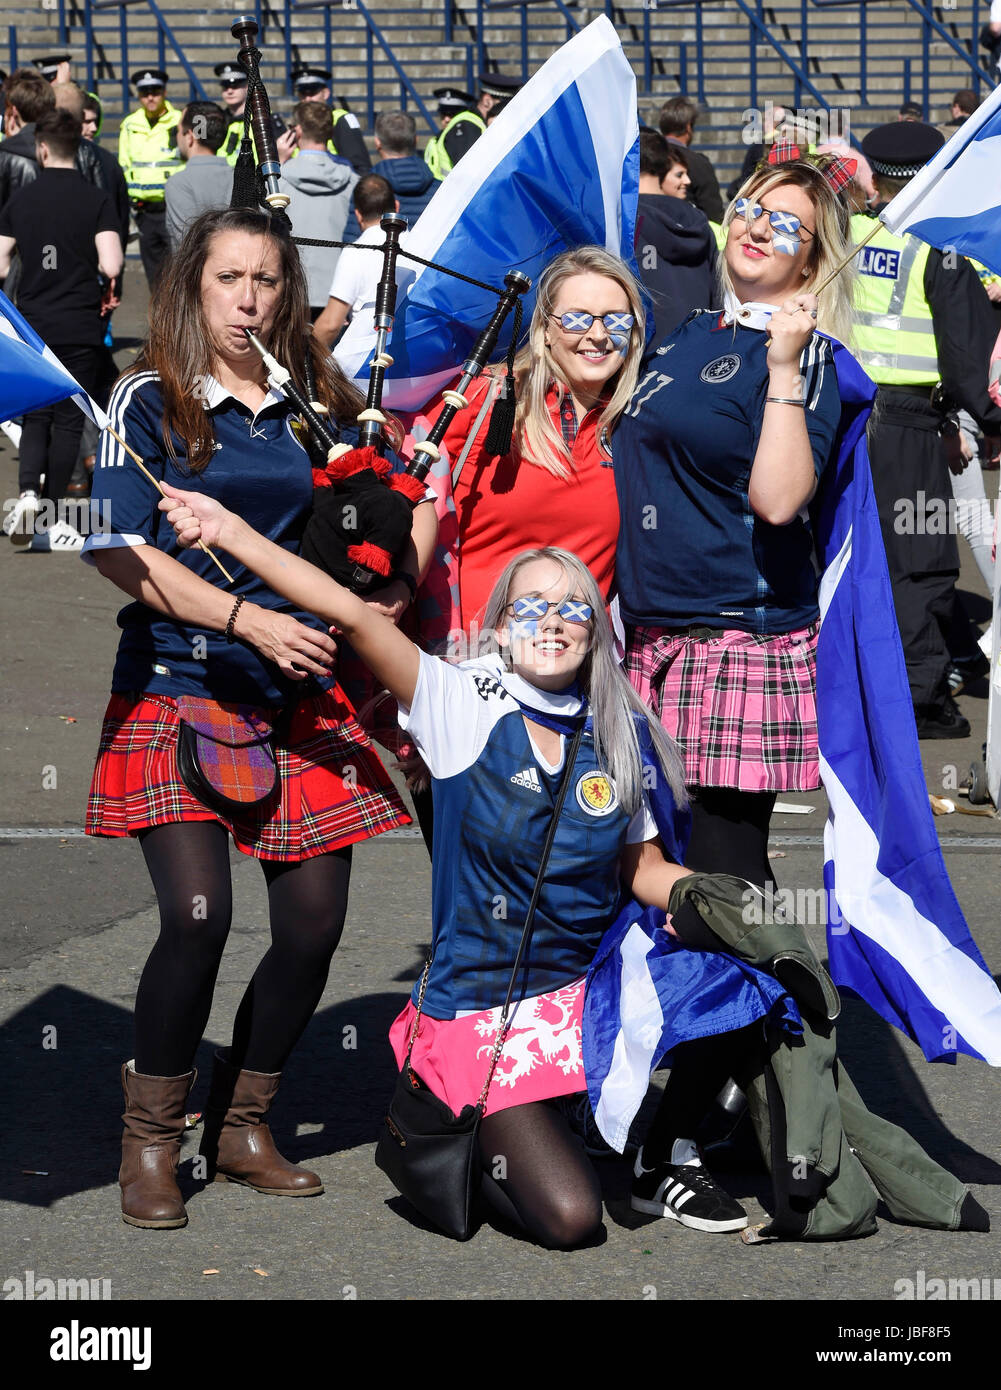 Scotland Fans Ahead Of The 2018 Fifa World Cup Qualifying Group F Match At Hampden Park Glasgow Press Association Photo Picture Date Saay June 10